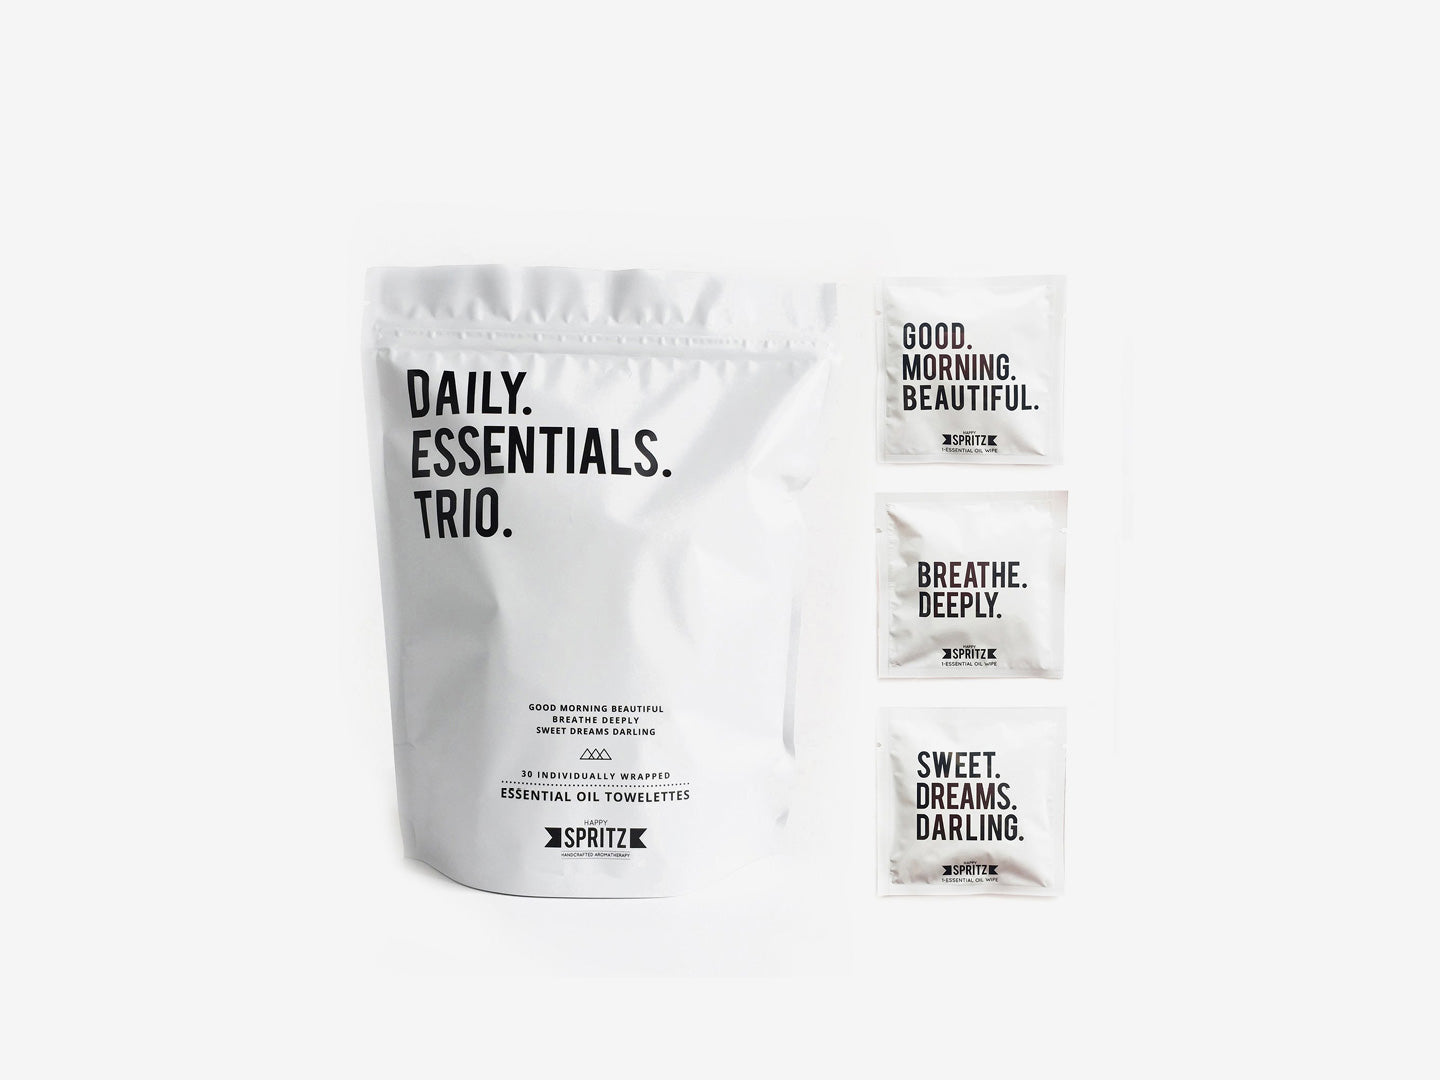 Essential Oil Towelettes – Daily Face Wipes